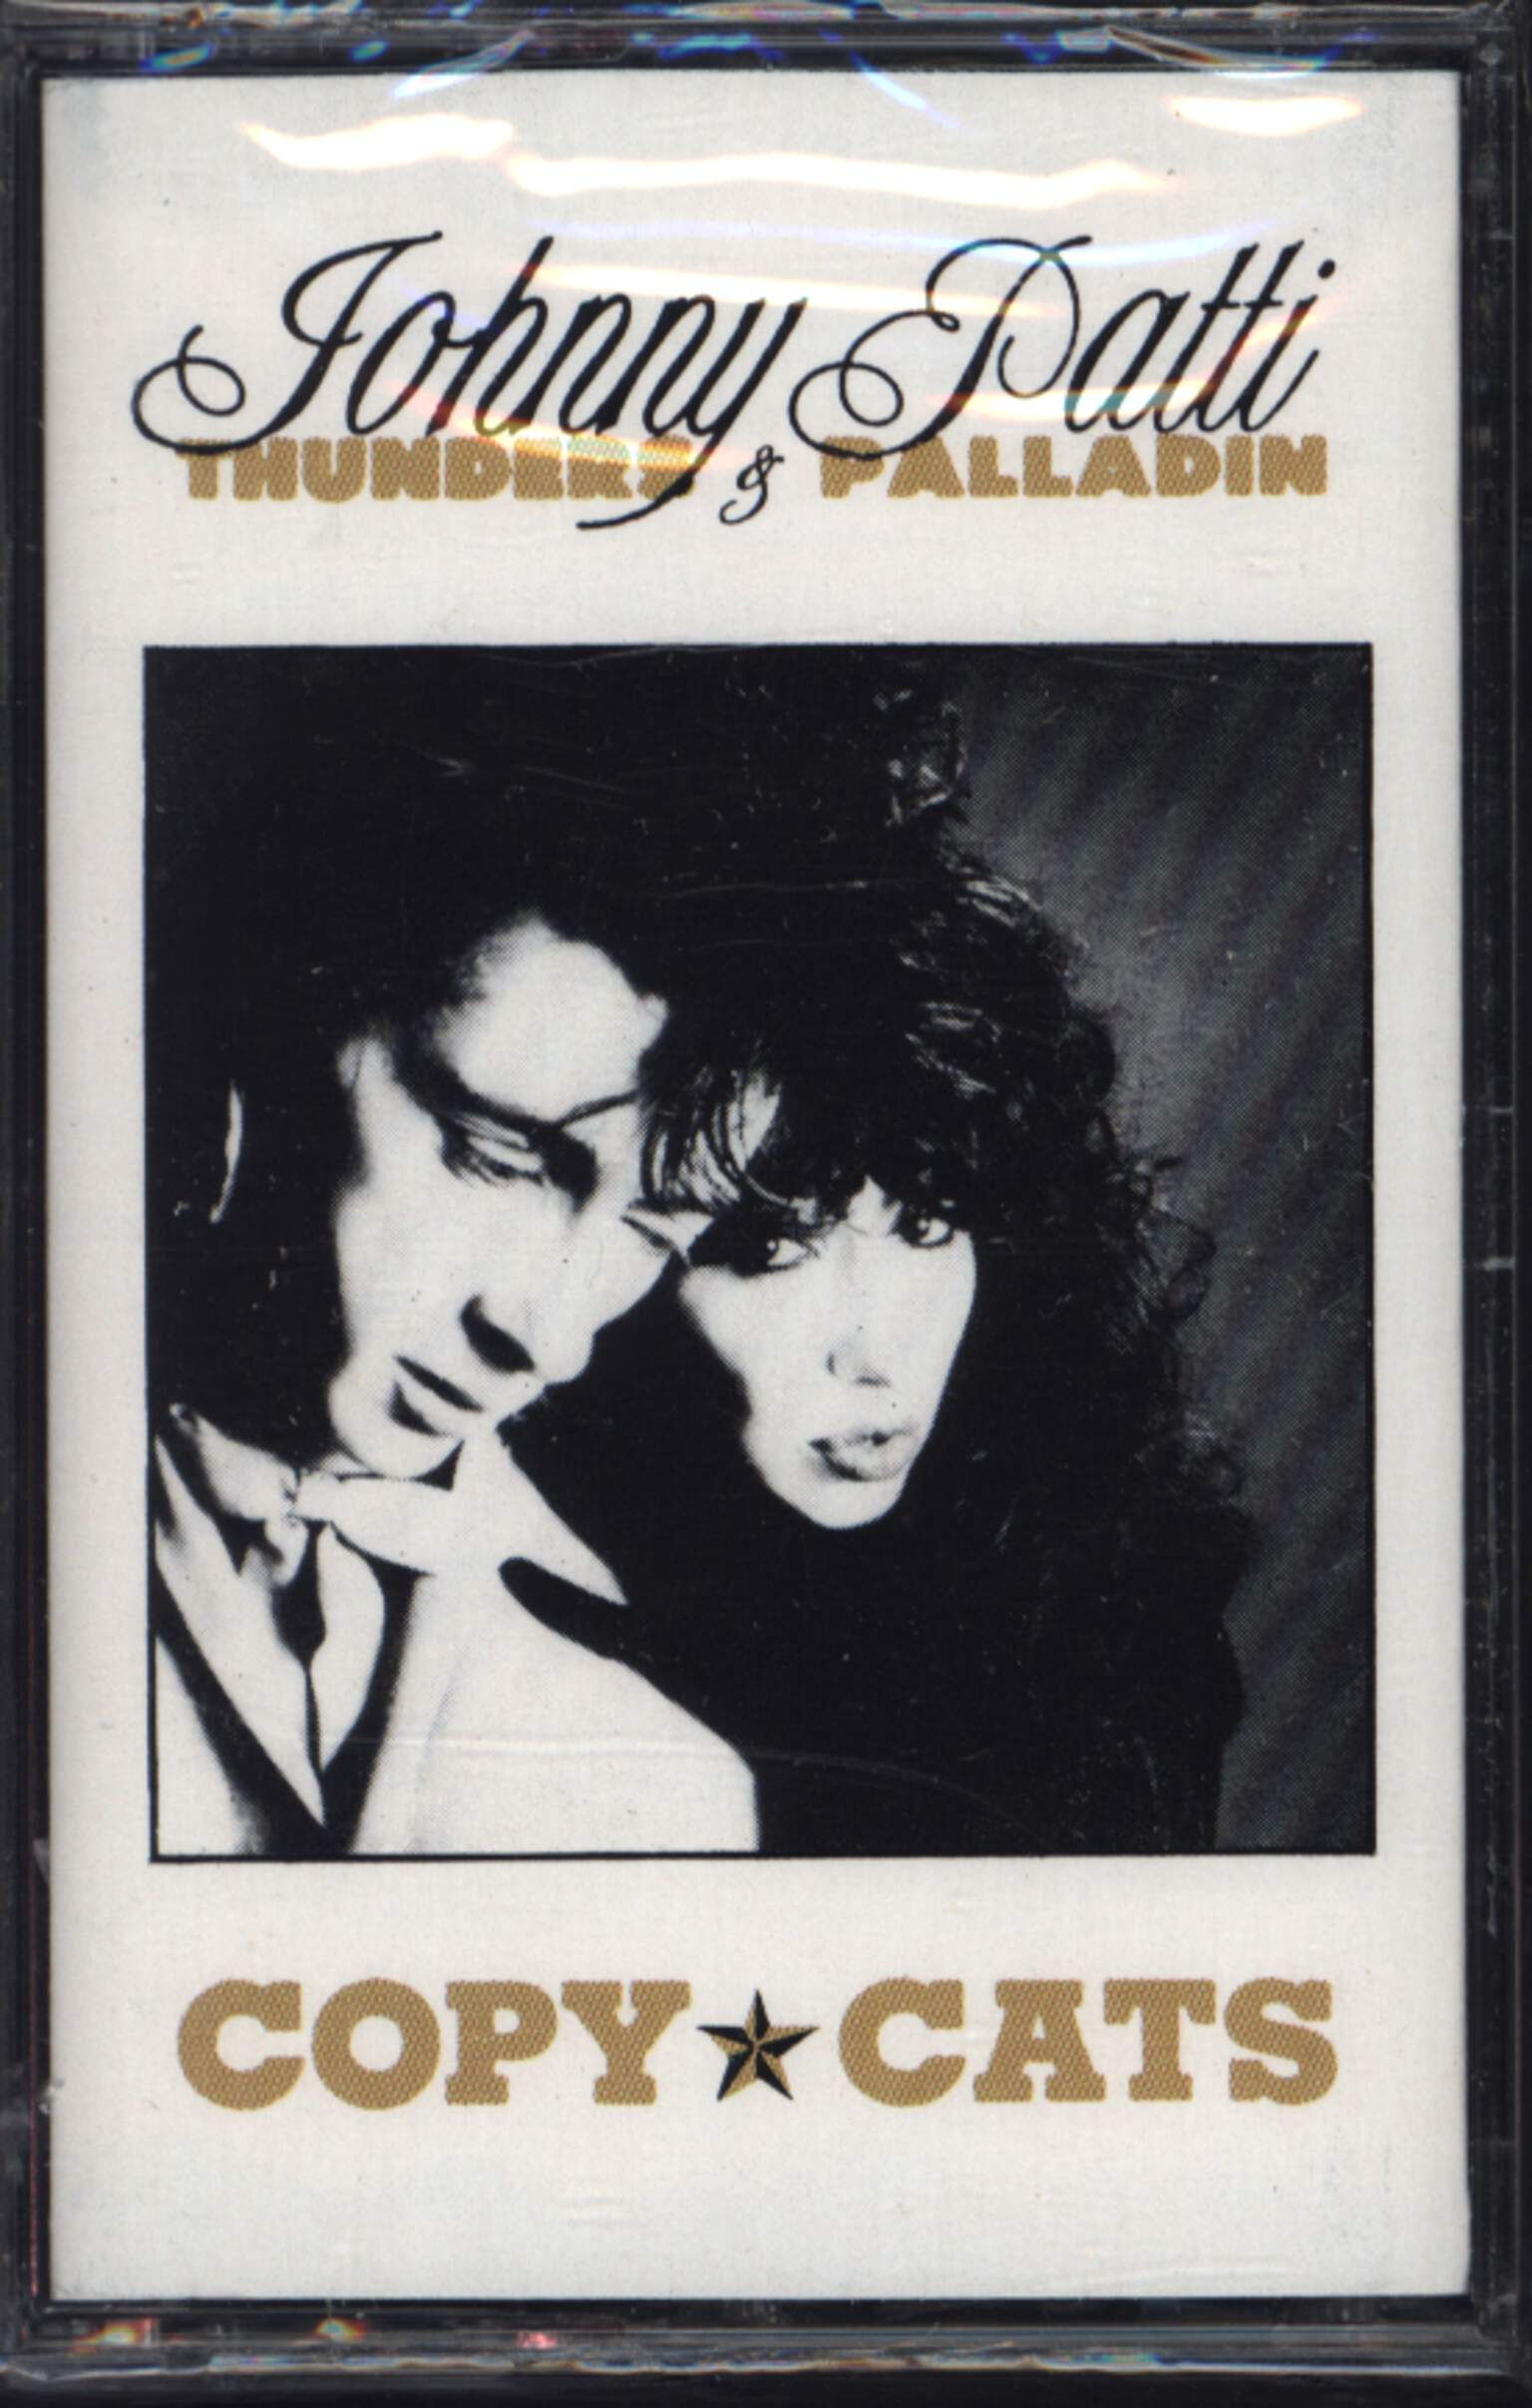 Johnny Thunders: Copy Cats, Compact Cassette